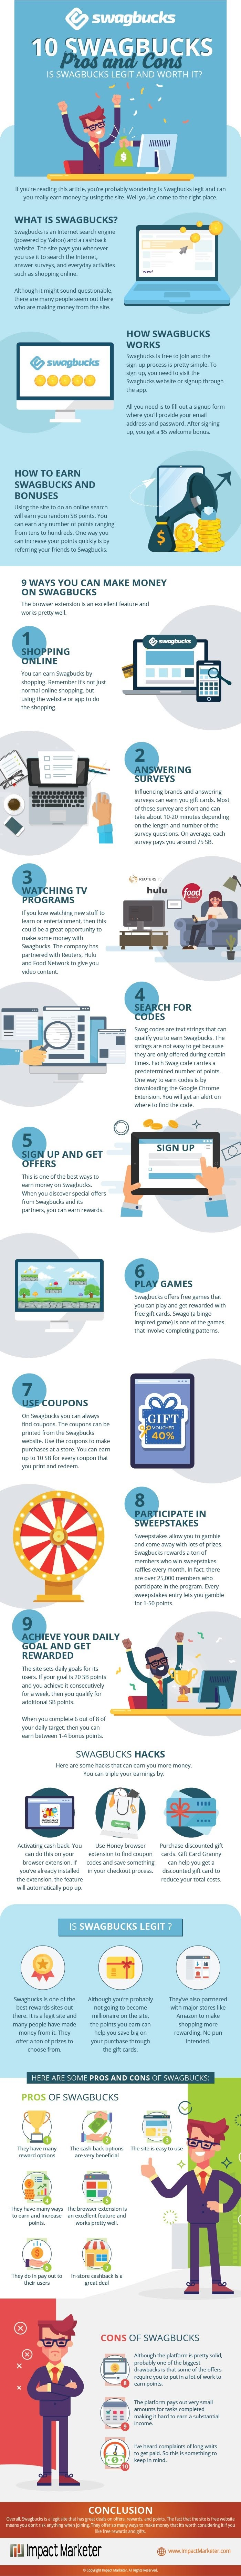 10 Swagbucks Pros and Cons: Is Swagbucks Legit and Worth It? #infographic